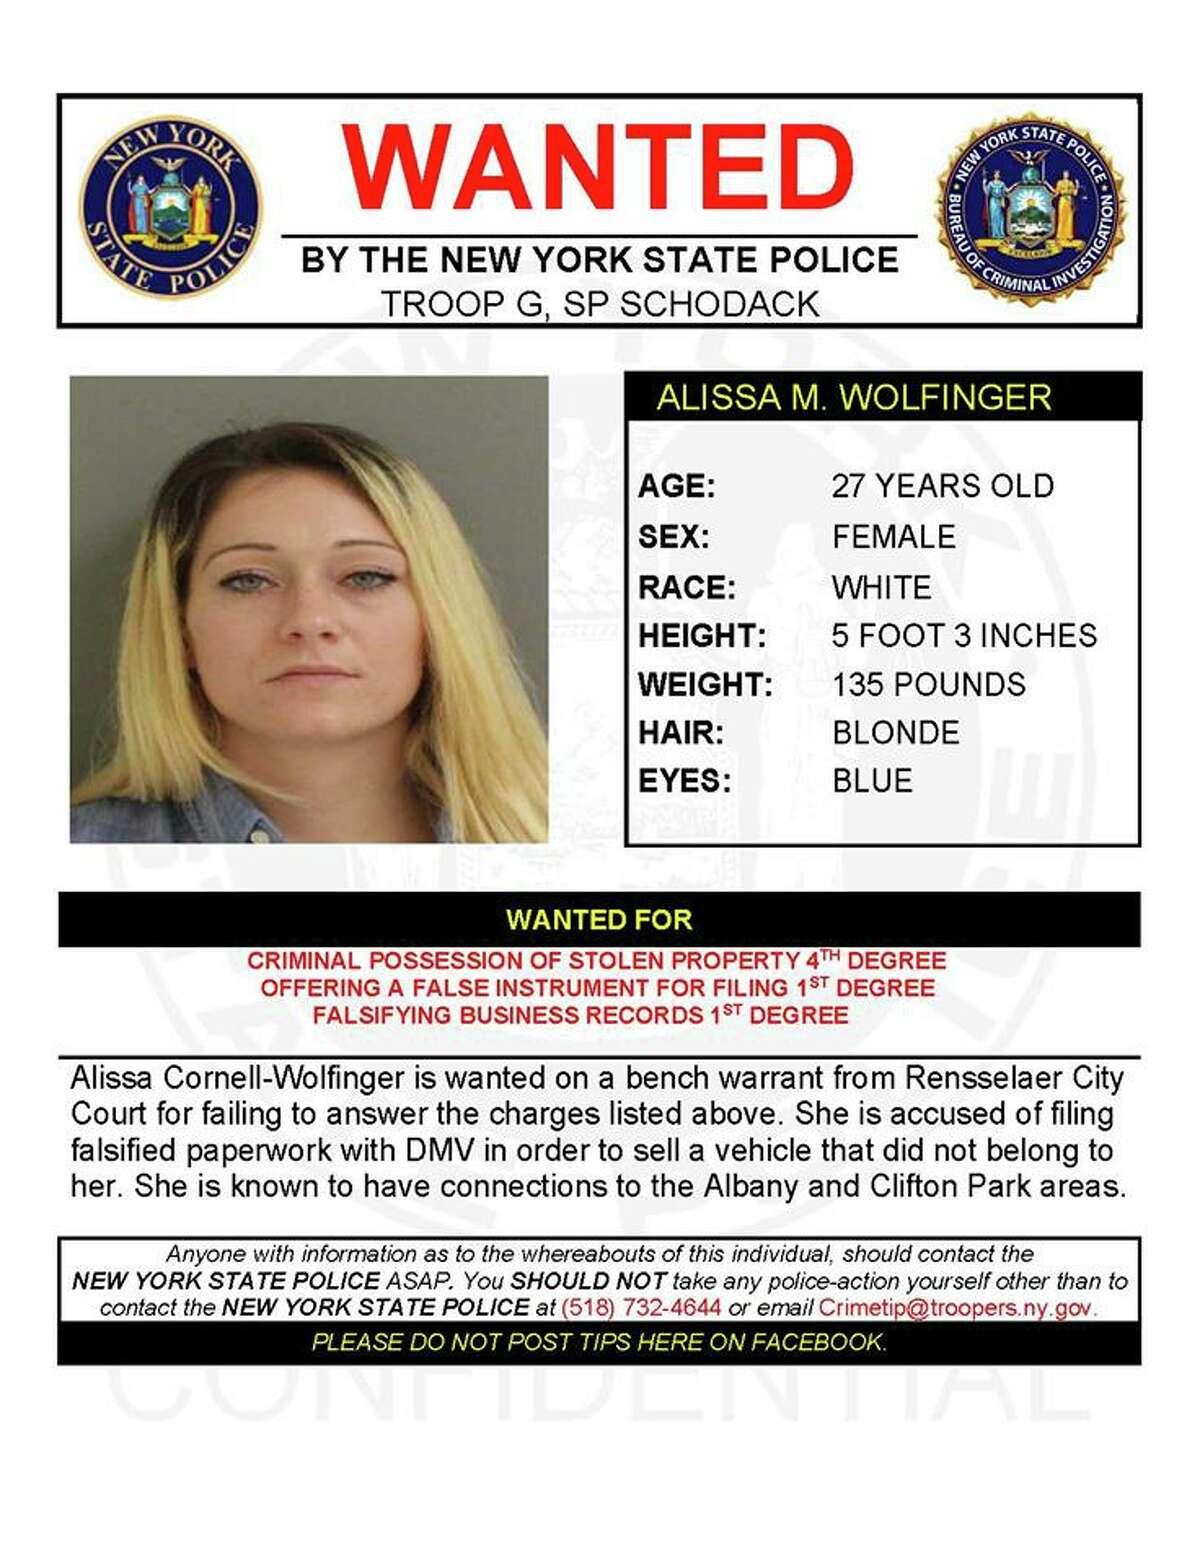 Alissa Cornell-Wolfinger is wanted forcriminal possession of stolen property 4th degree, offering a false instrument for filing 1st degree, falsifying business records 1st degree ina bench warrant from Rensselaer City Court for failing to answer the charges listed above. She is accused of filing falsified paperwork with DMV in order to sell a vehicle that did not belong to her.